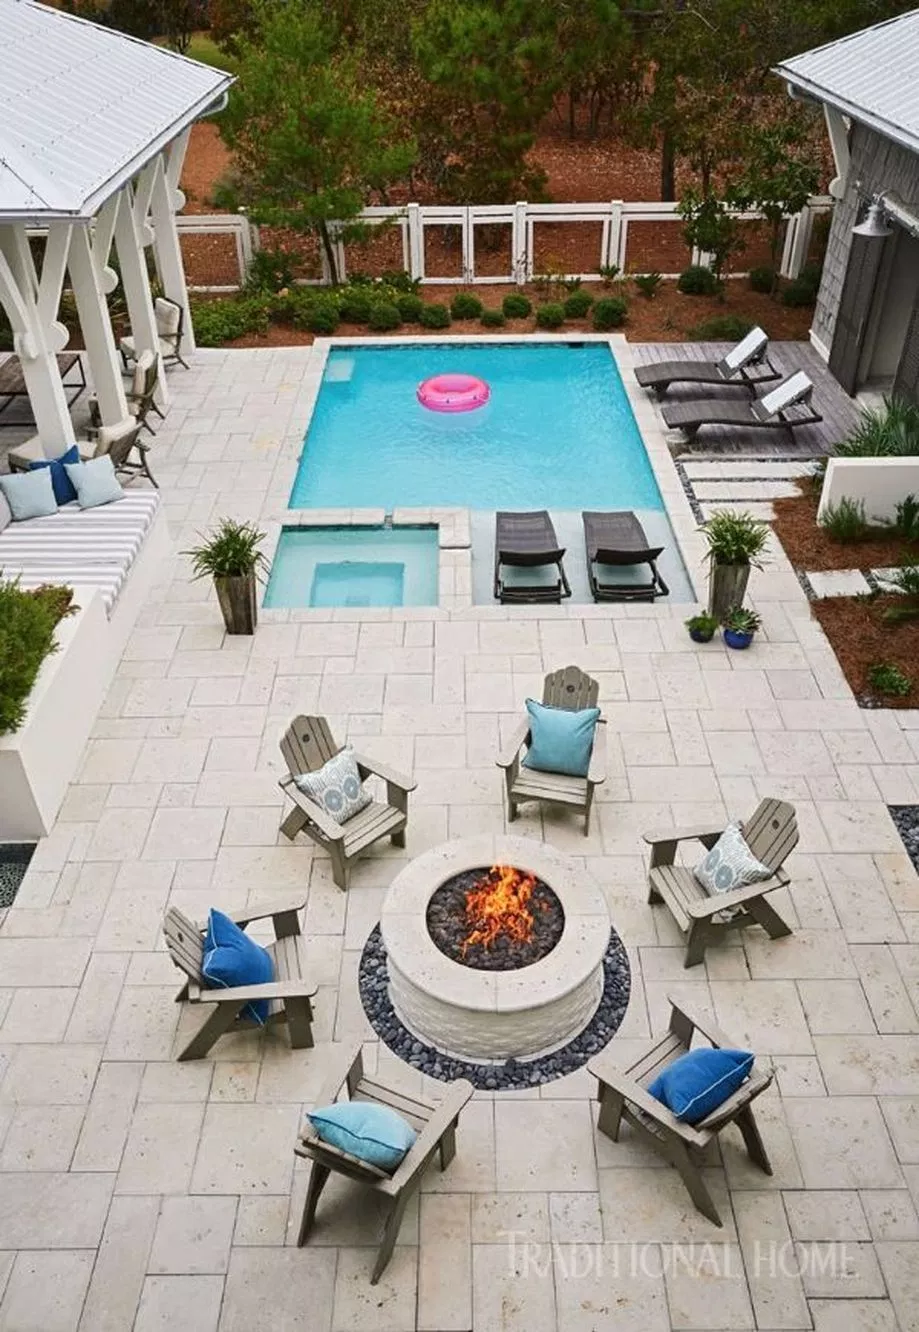 Awesome Small Pool Design For Home Backyard 60 Hoommy Com Small Pool Design Backyard Layout Small Backyard Pools